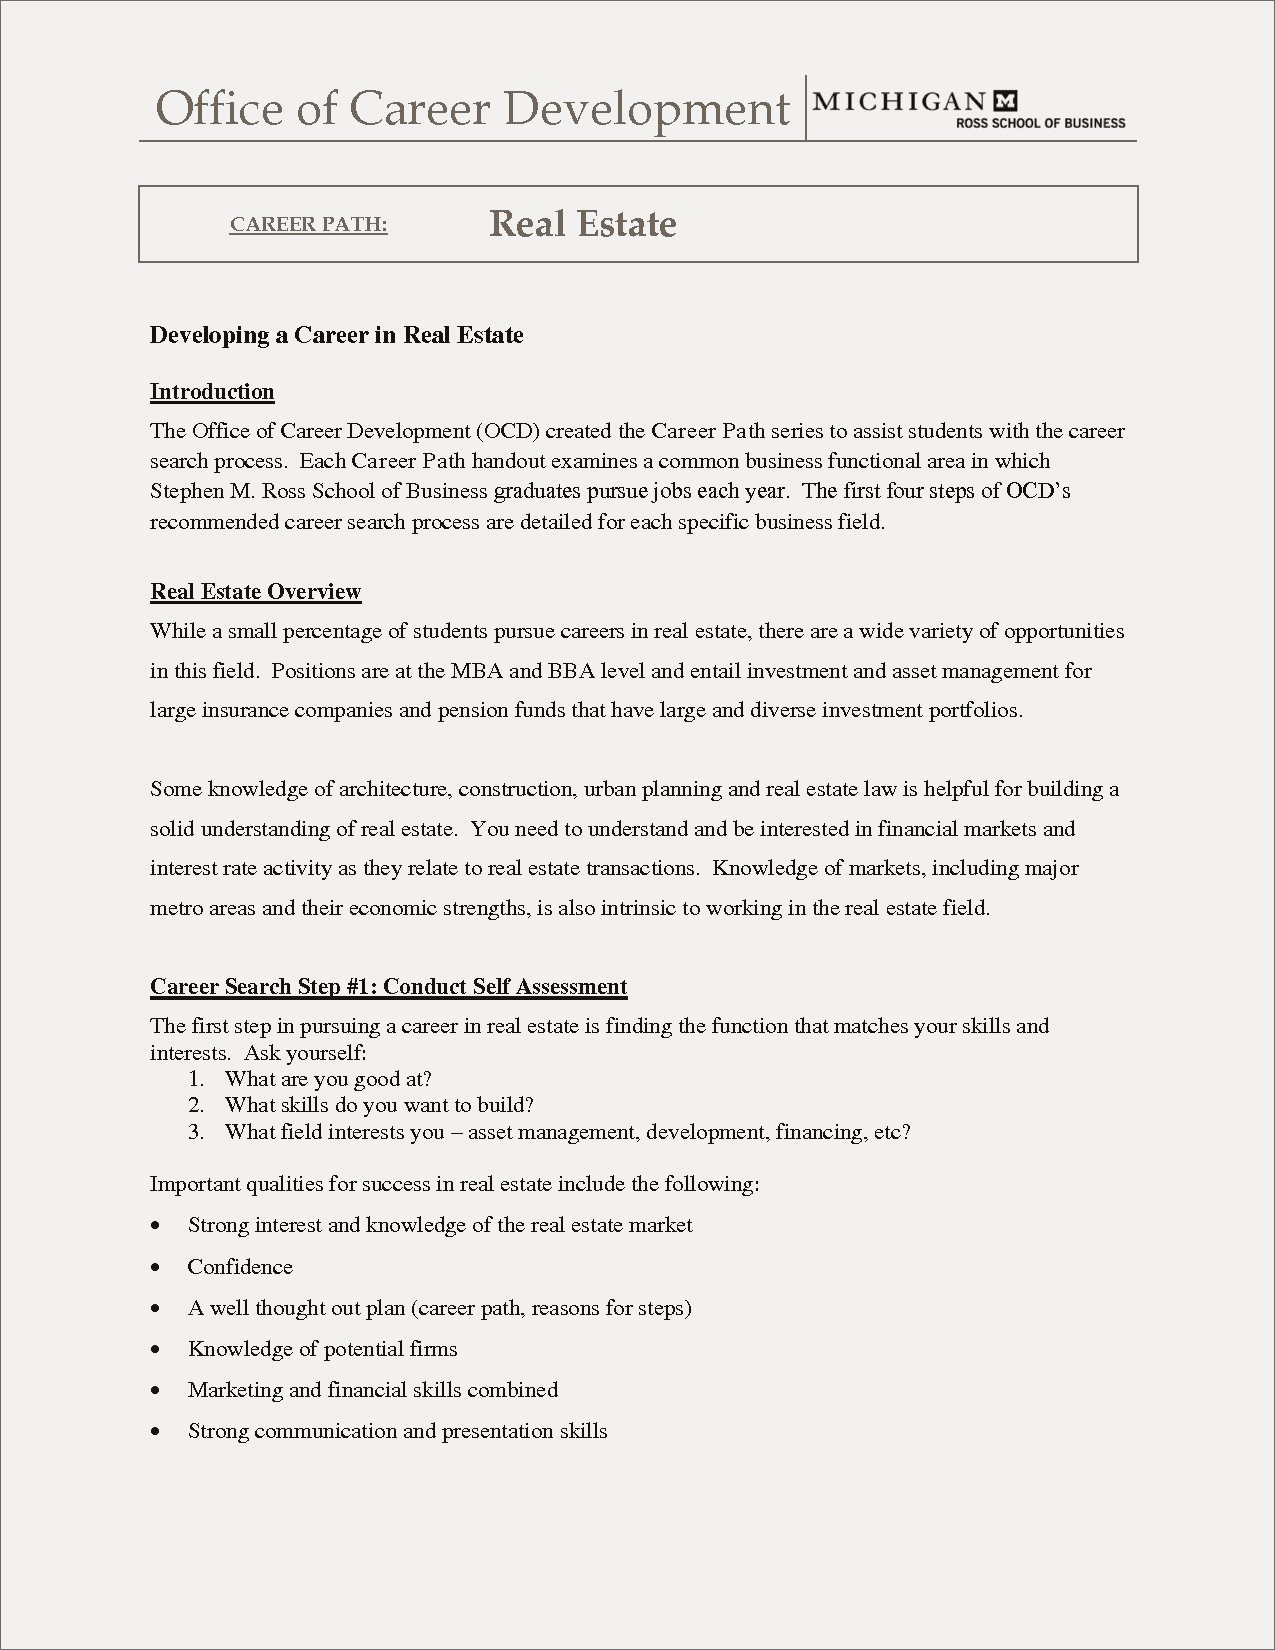 Real Estate Agent Resume Template - Real Estate assistant Resume New Ross School Business Resume